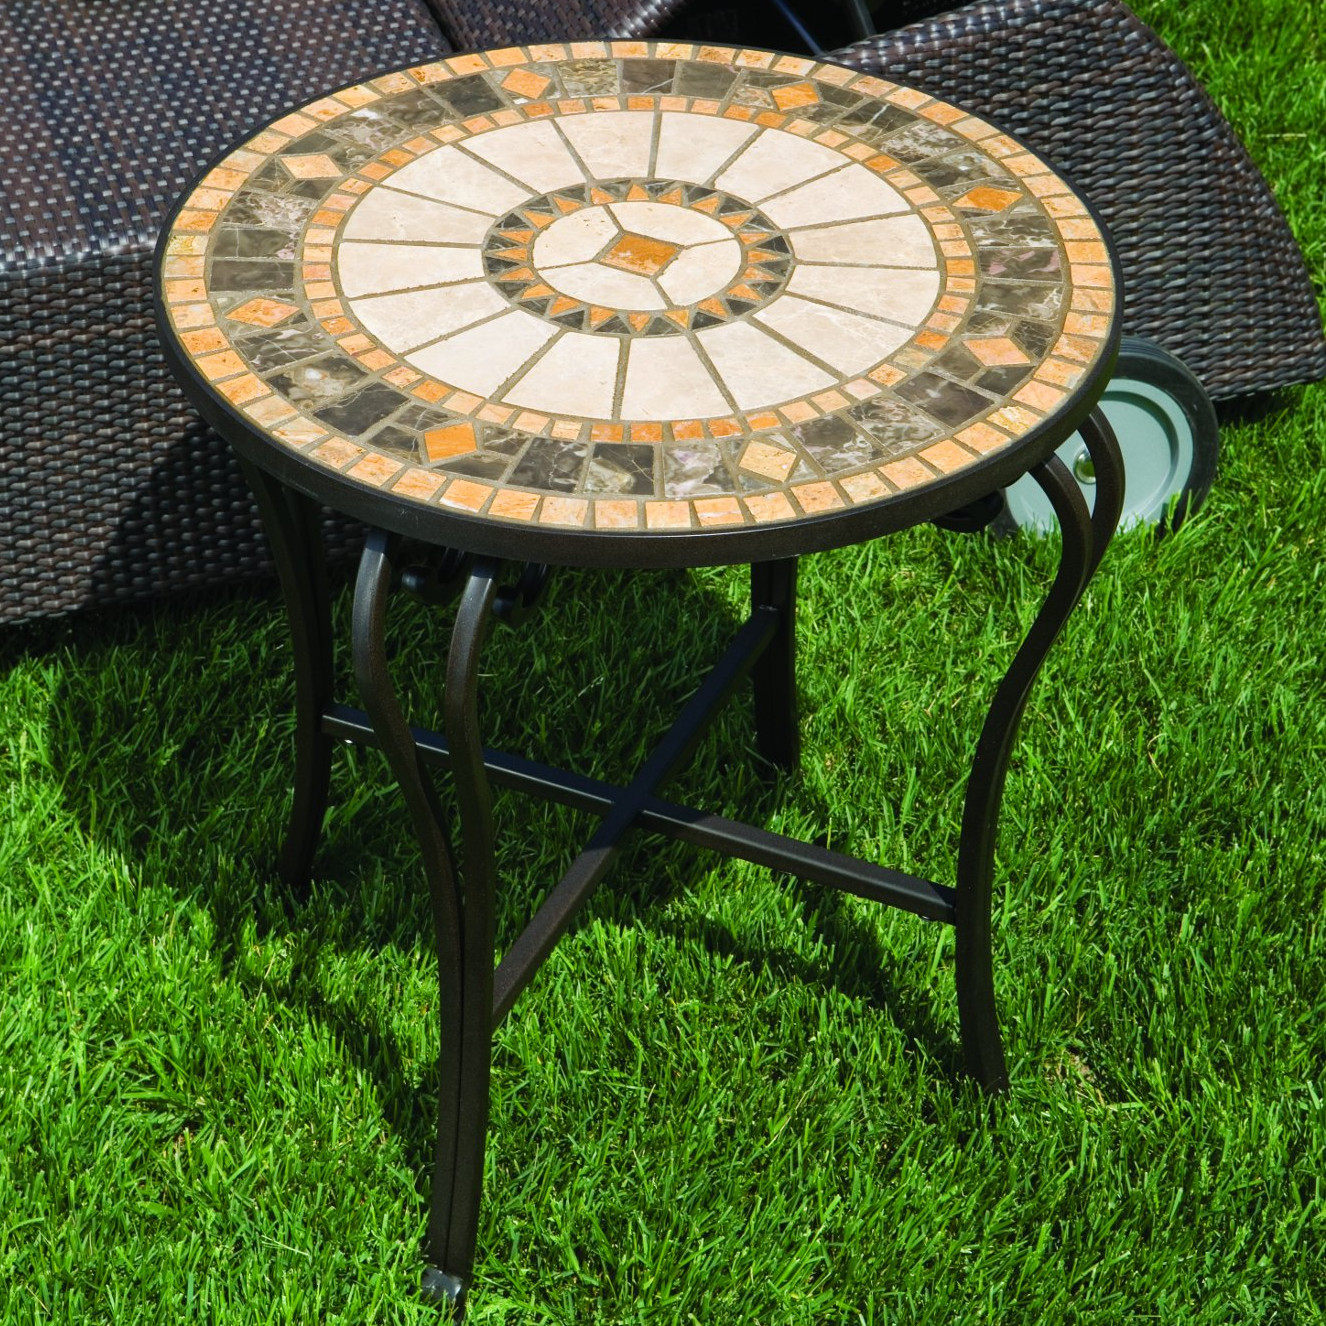 alfresco home compass mosaic side table hampton bay patio accent indoor tables for outdoor cover square umbrella white corner end wire basket trestle tuscan hills grey kitchen